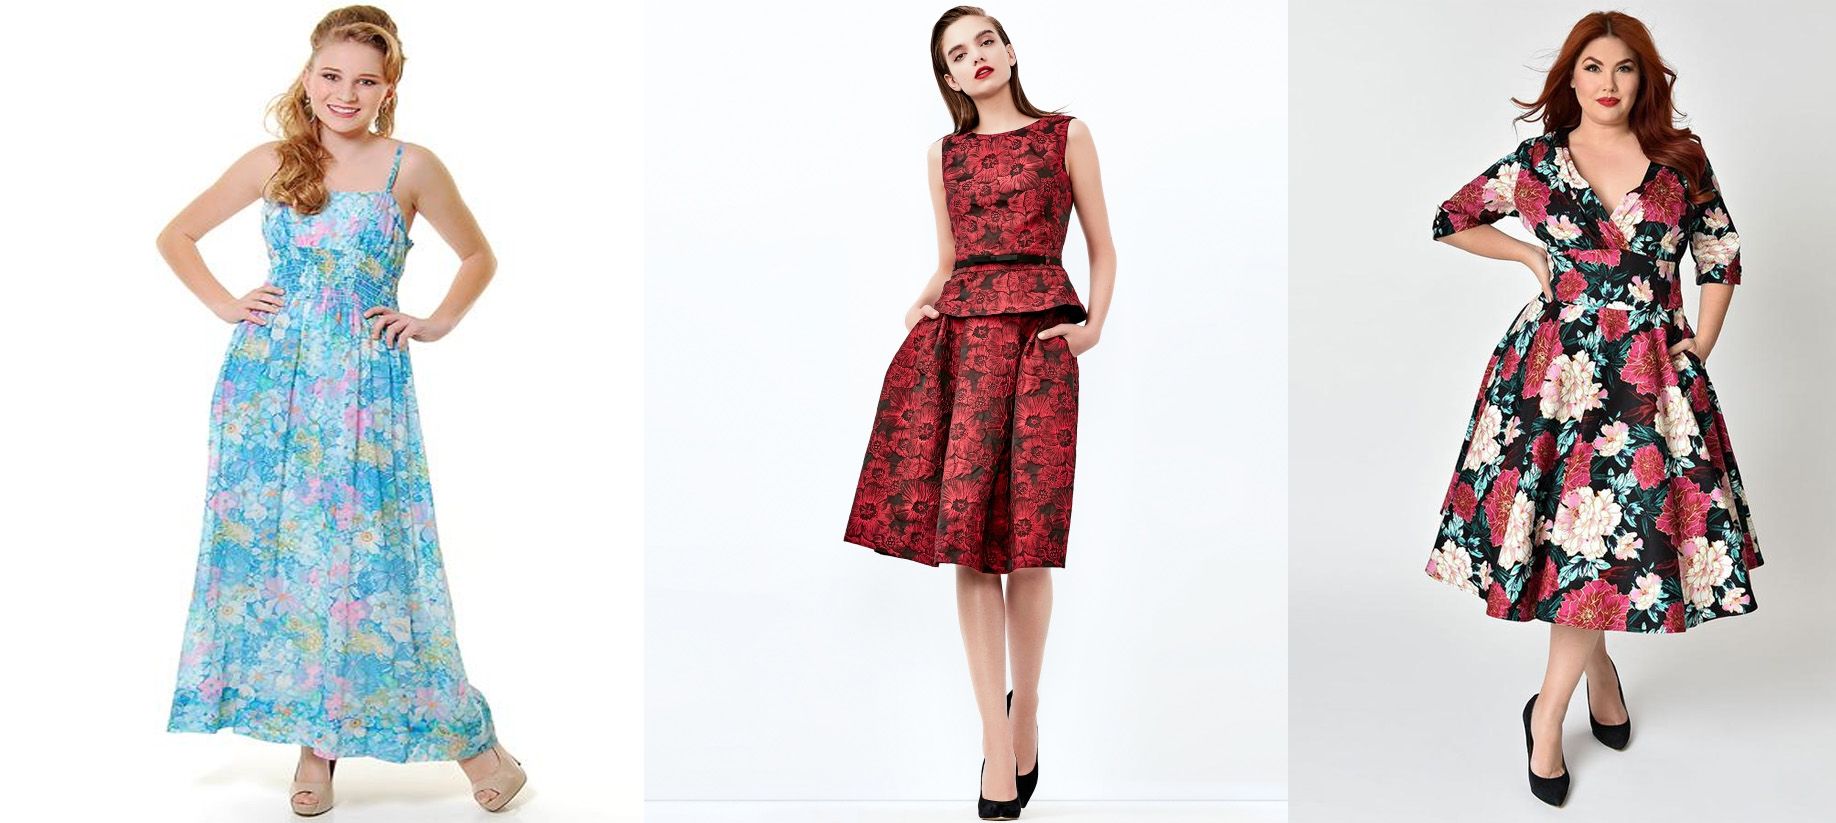 Floral Vintage Graduation Dresses For Girls Size S TS6075